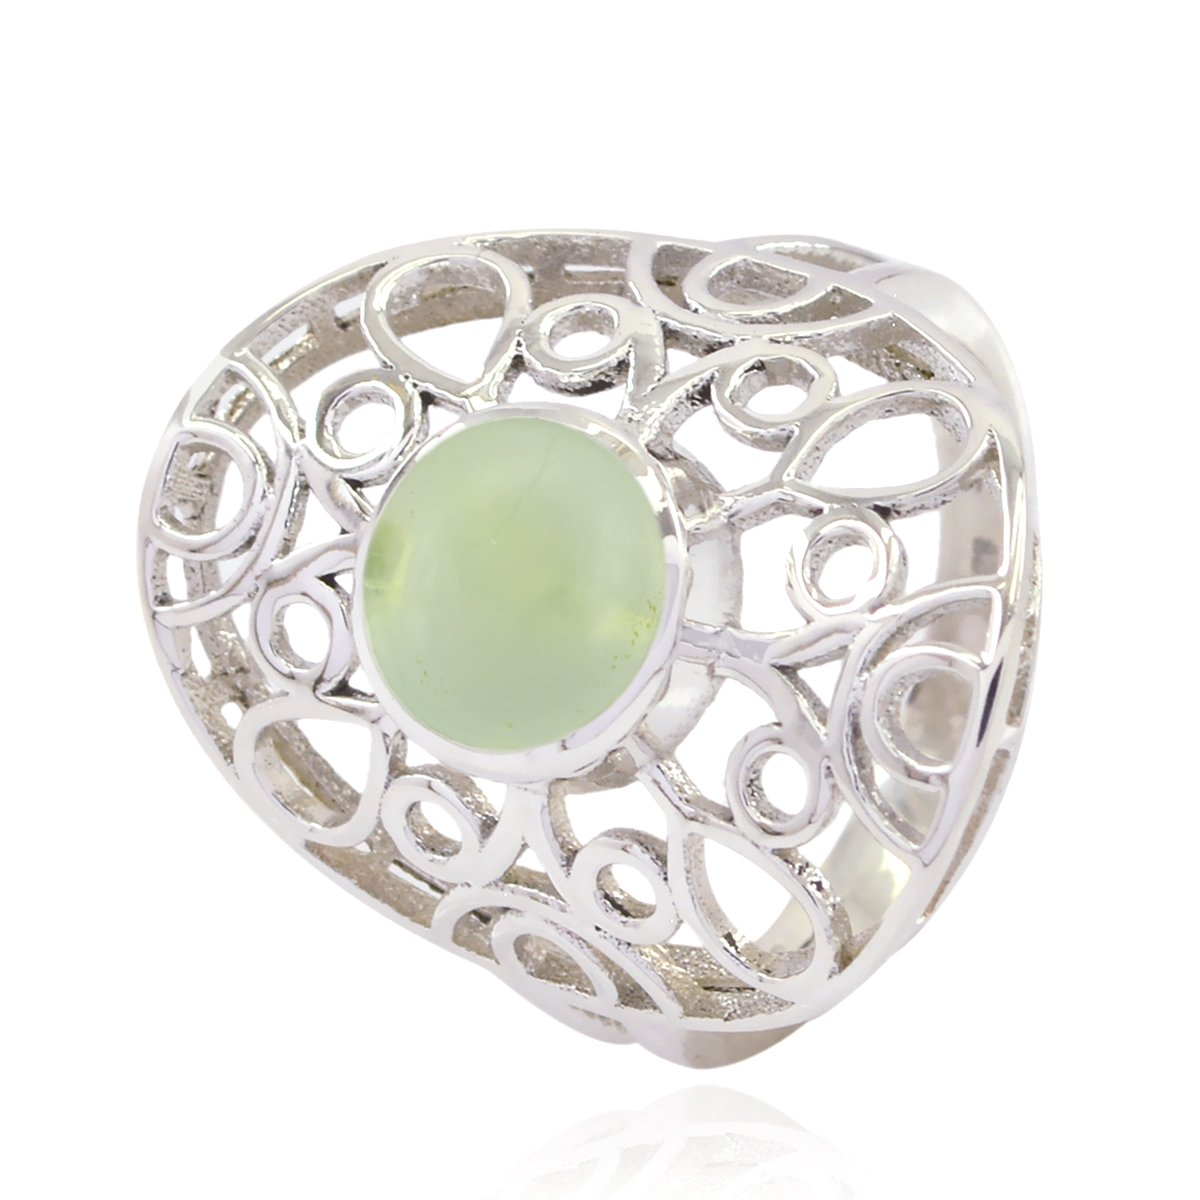 925 Silver Green Prehnite Genuine Gems Ring Home /& Living Gift for College Rings Genuine Gems Round cabochon Prehnite Ring